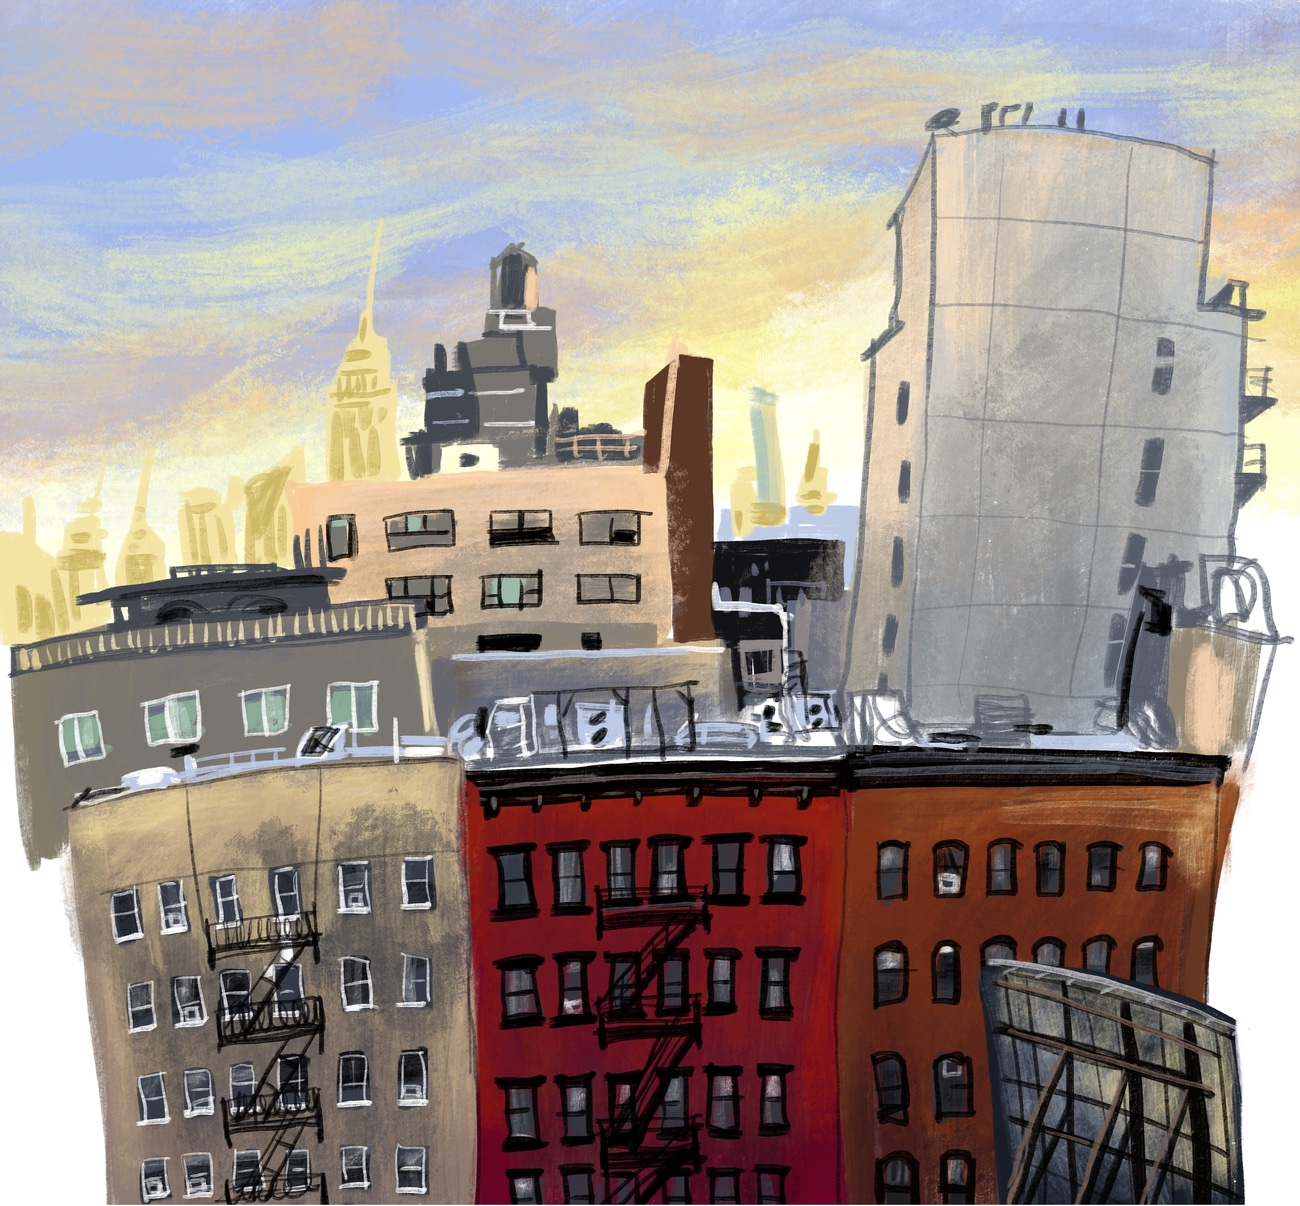 2018-NYC-9-Manhattan view-4K_Sketcherman.jpg